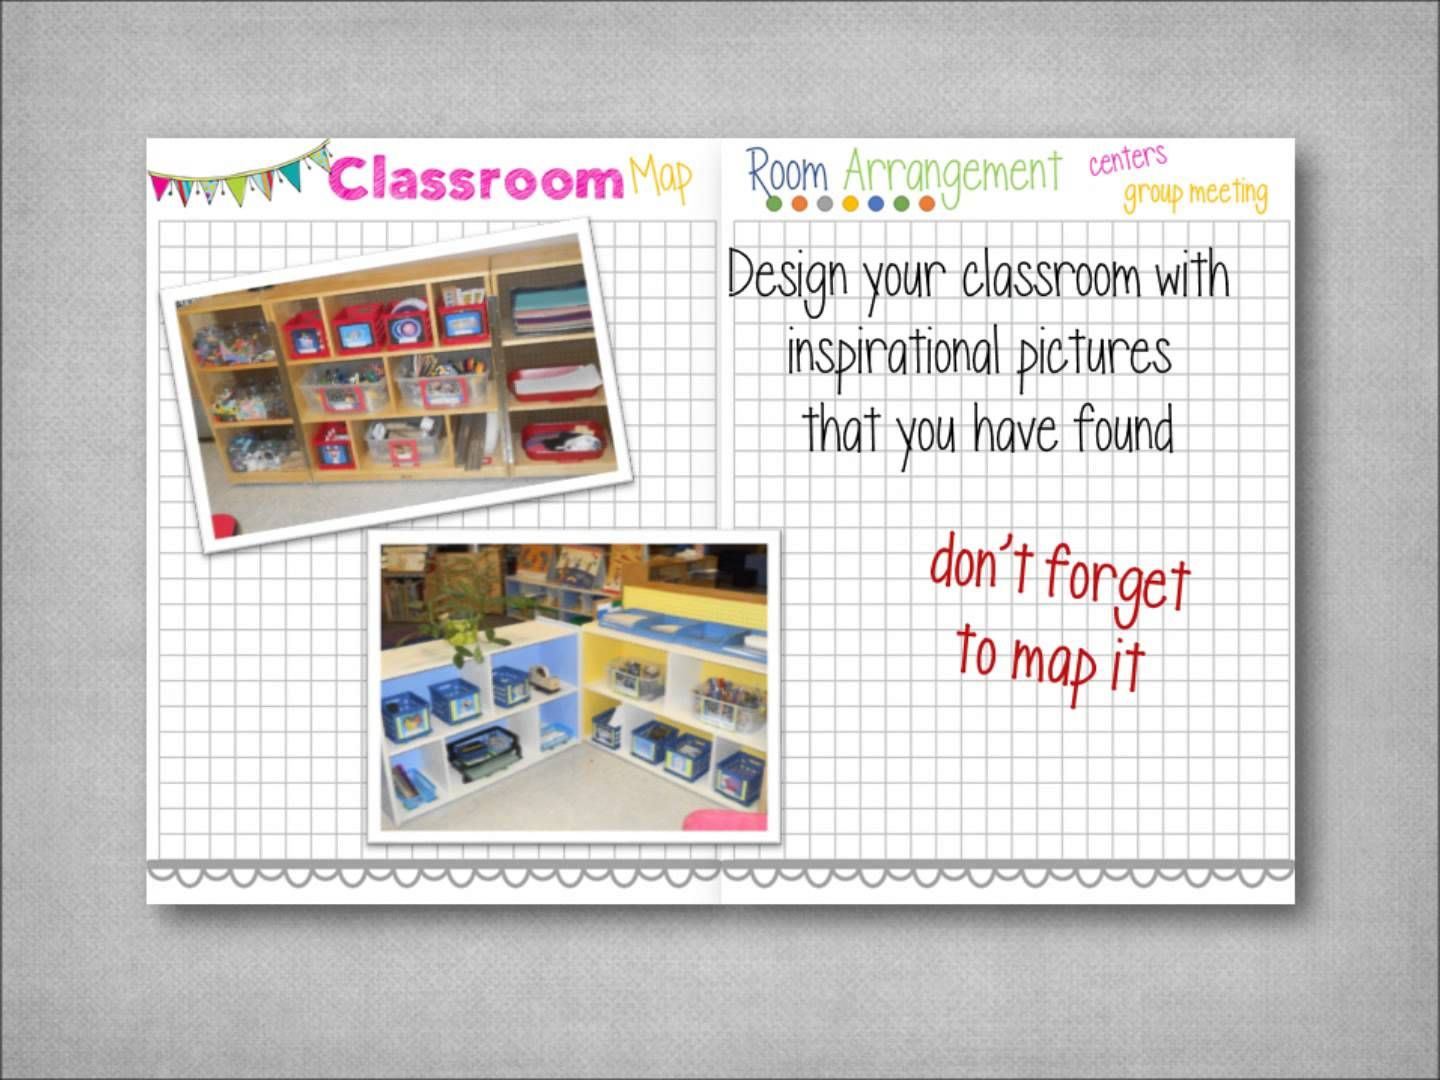 Watch to see how you can create your own lesson plan